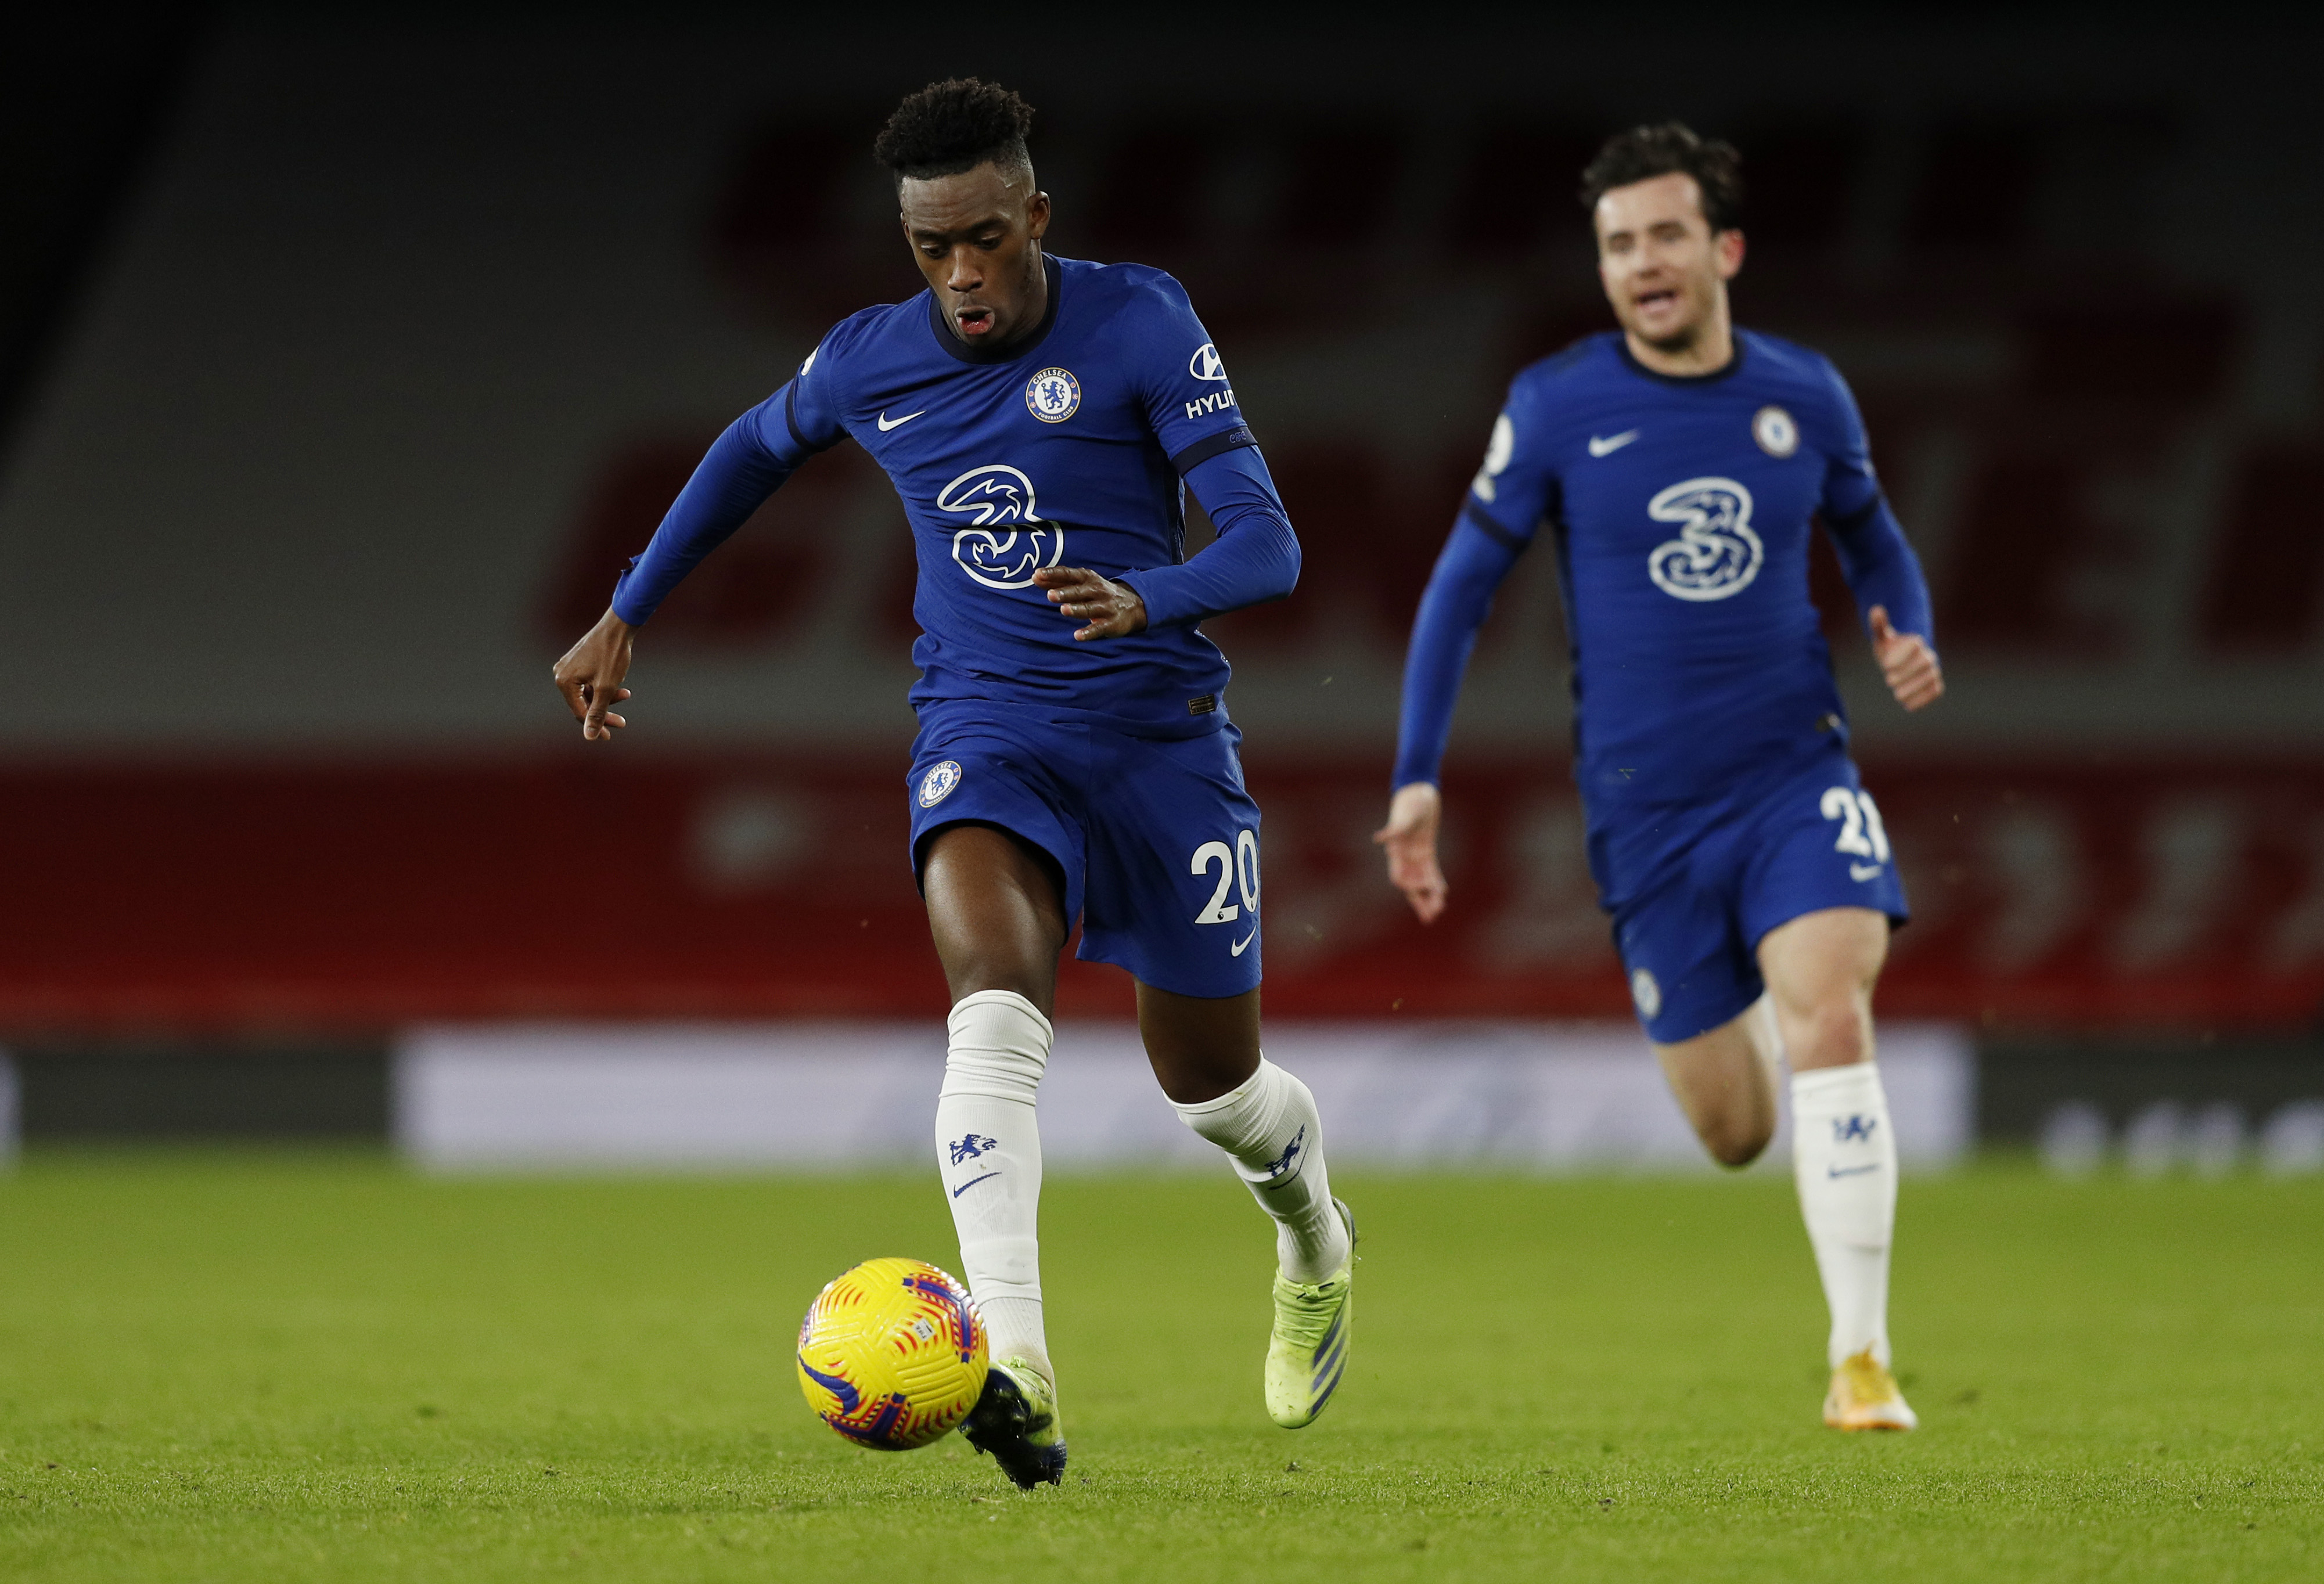 Chelsea players rated in disappointing loss vs Leicester City (Chelsea's Hudson-Odoi is seen in the photo)